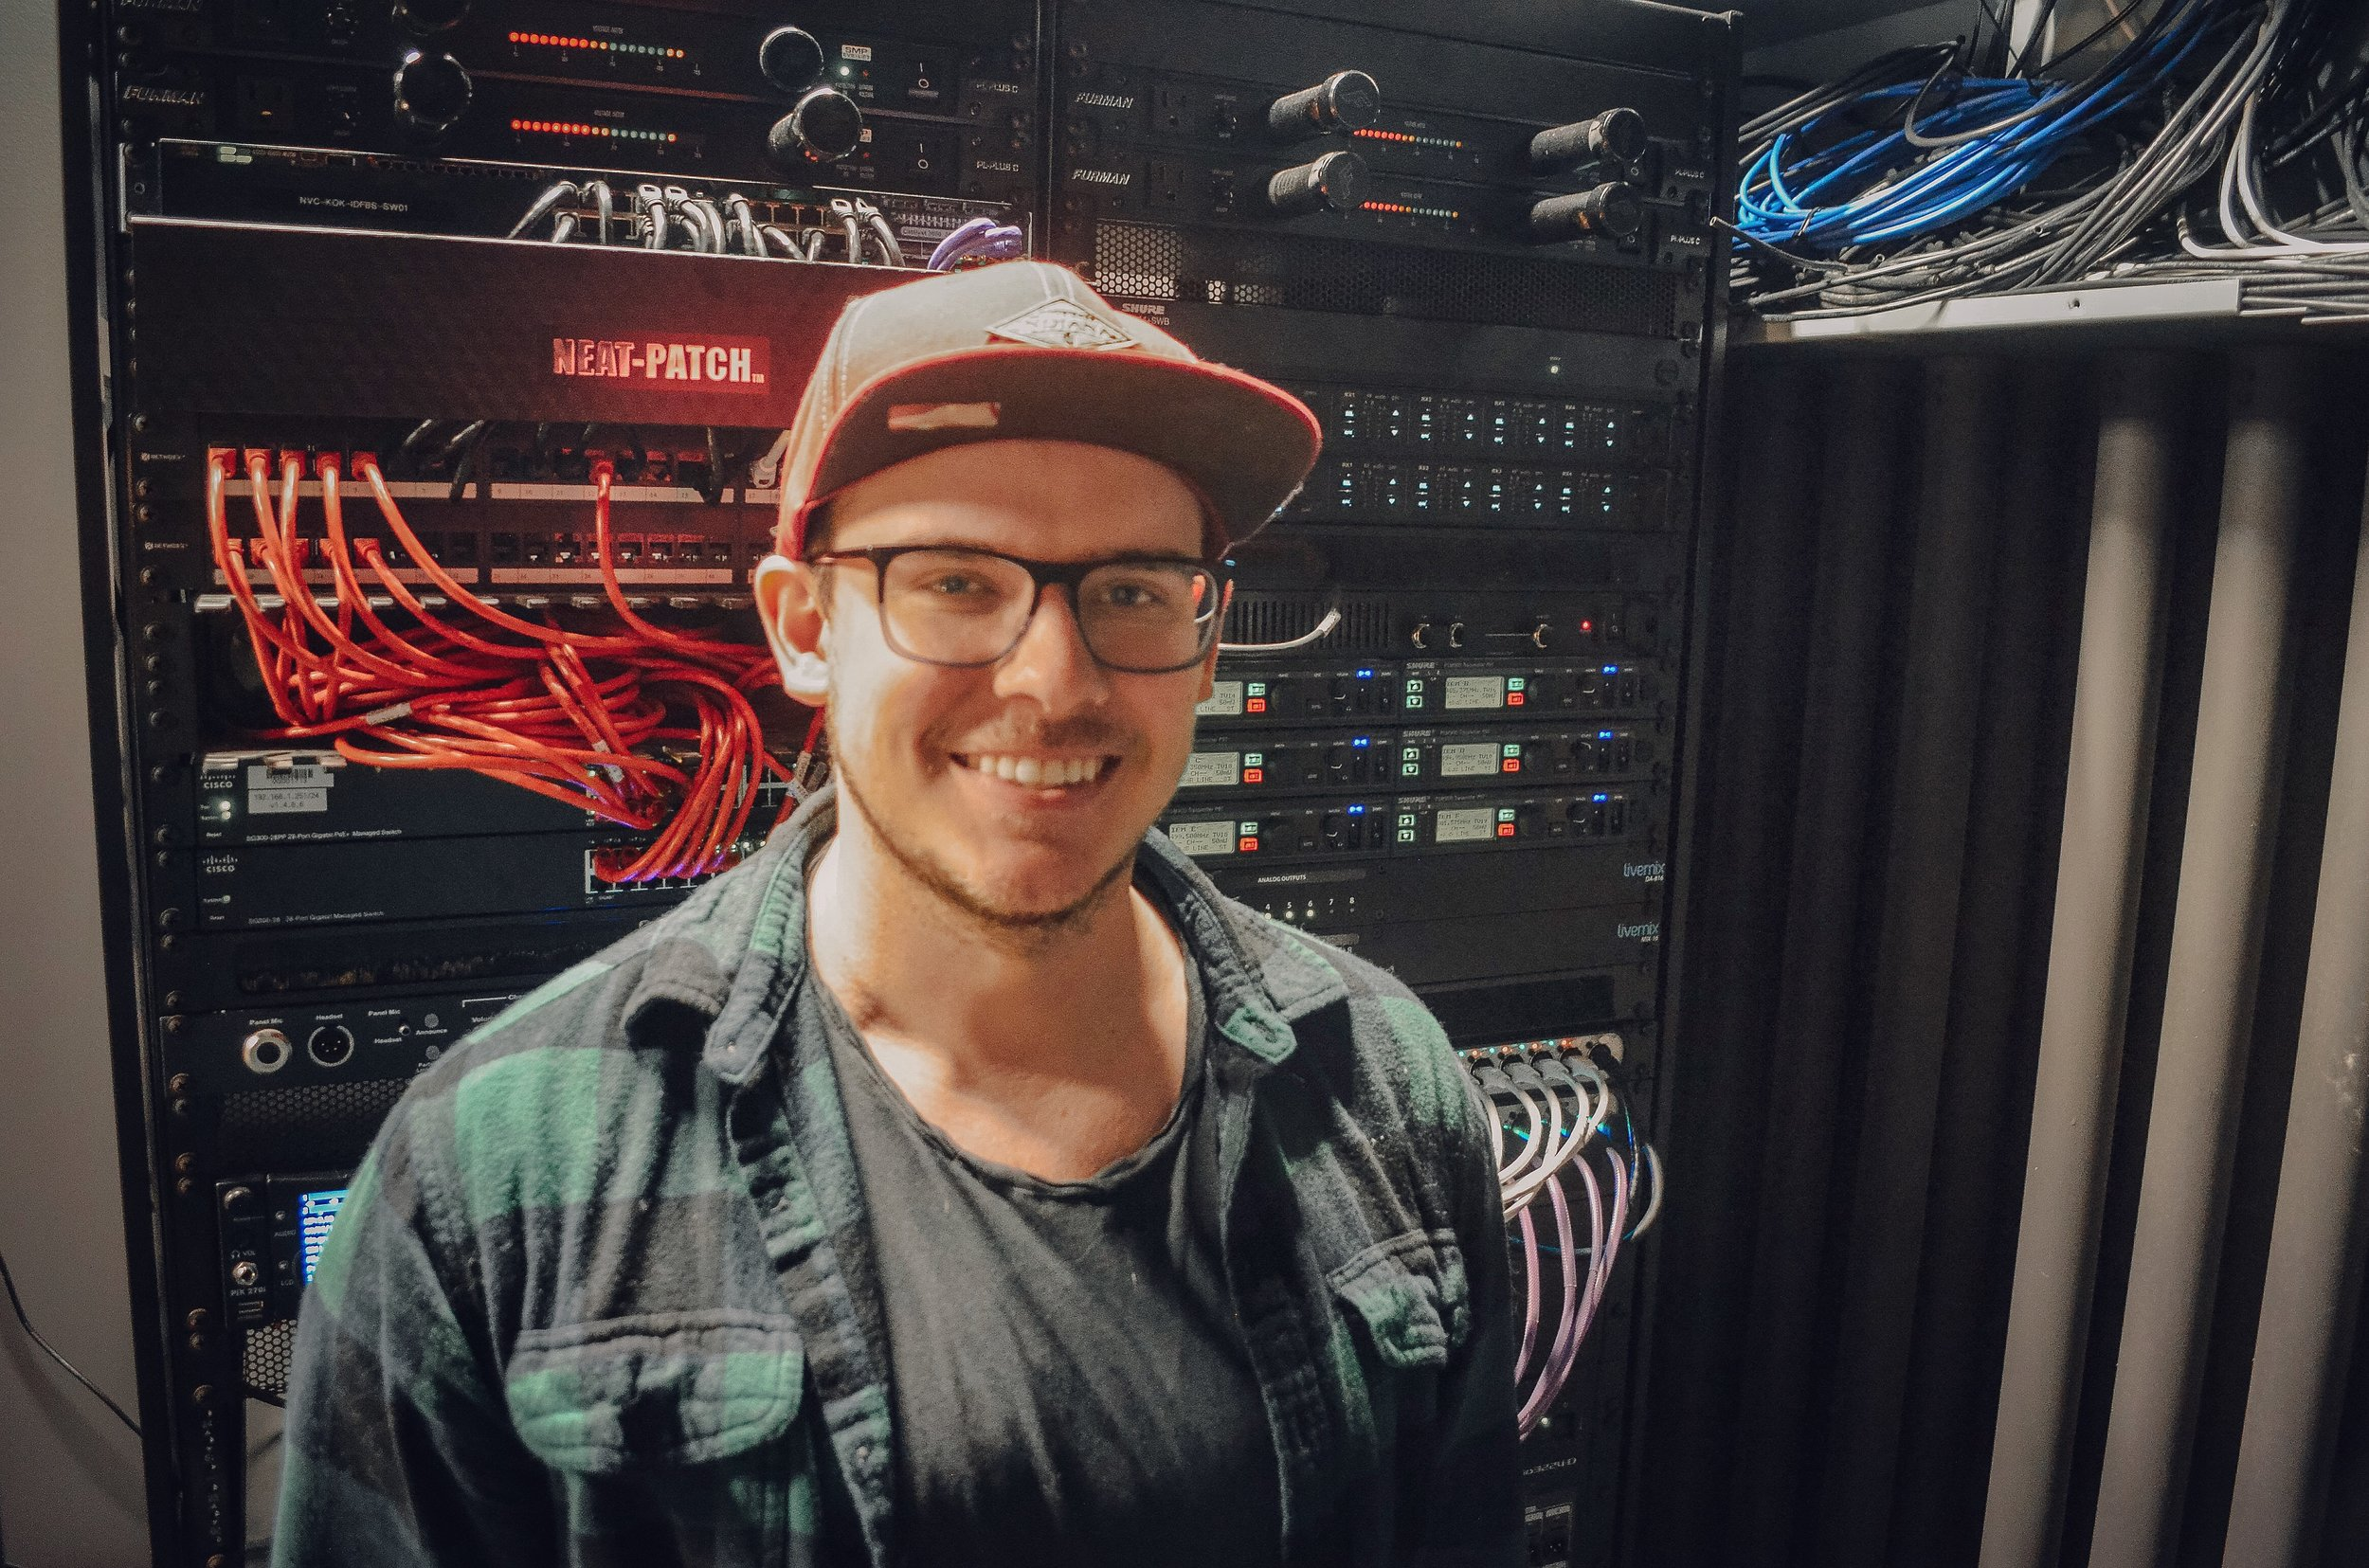 """This is Marshall Bales. - I met Marshall in 2018 through church. We hit it off, and about halfway through 2018, he blew me away with his generosity. He offered to engineer a drum session for Luke Cross and me. I'm very grateful for it. I wasn't even sure if """"real"""" drums were going to be possible on this record, but God made a way through Marshall and Luke's generosity and talent.I thanked Marshall several times as we were leaving the drum session, and he said the best way to repay him was to not give up or cut corners. He said he would always volunteer for the sake of art. How cool is that? That's the kind of musician I want to be - encouraging and helping others create art any way I can.Thank you, Marshall!"""